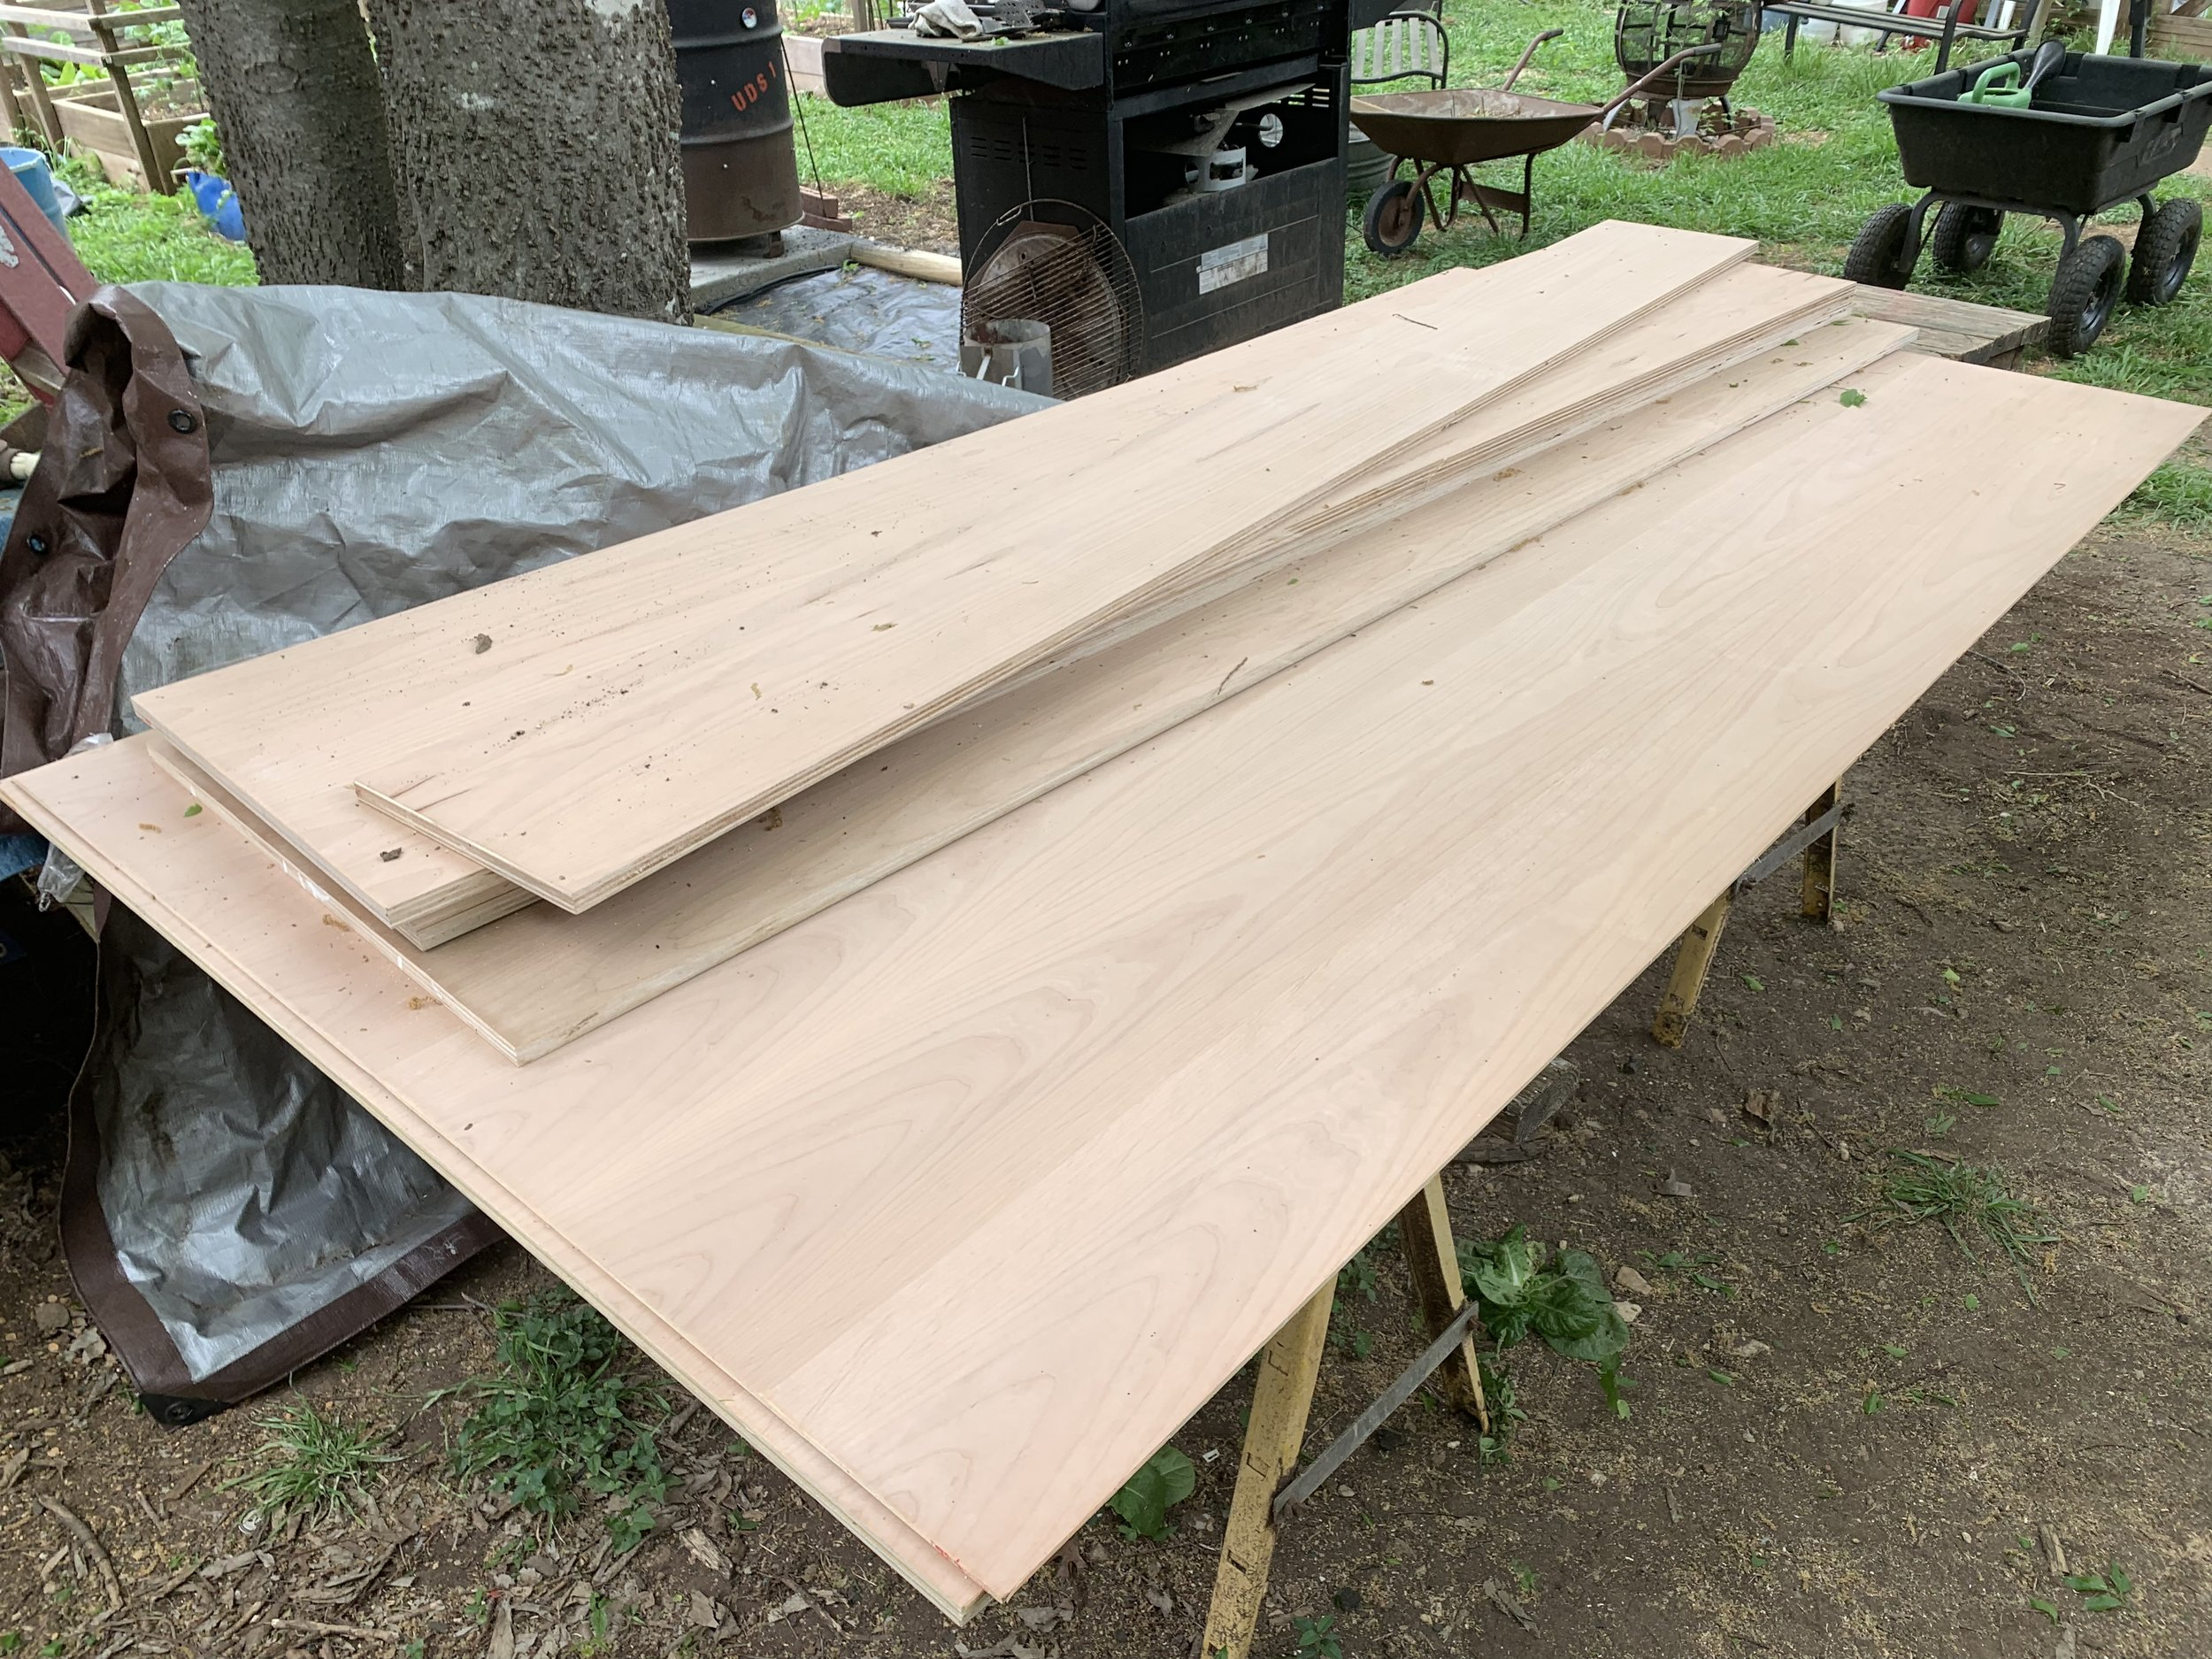 With our big cuts done, we ripped the pieces in half for the backs and sides. Unfortunately, we needed one extra sheet. Oh darn. I have to go back to Austin Fine Lumber…